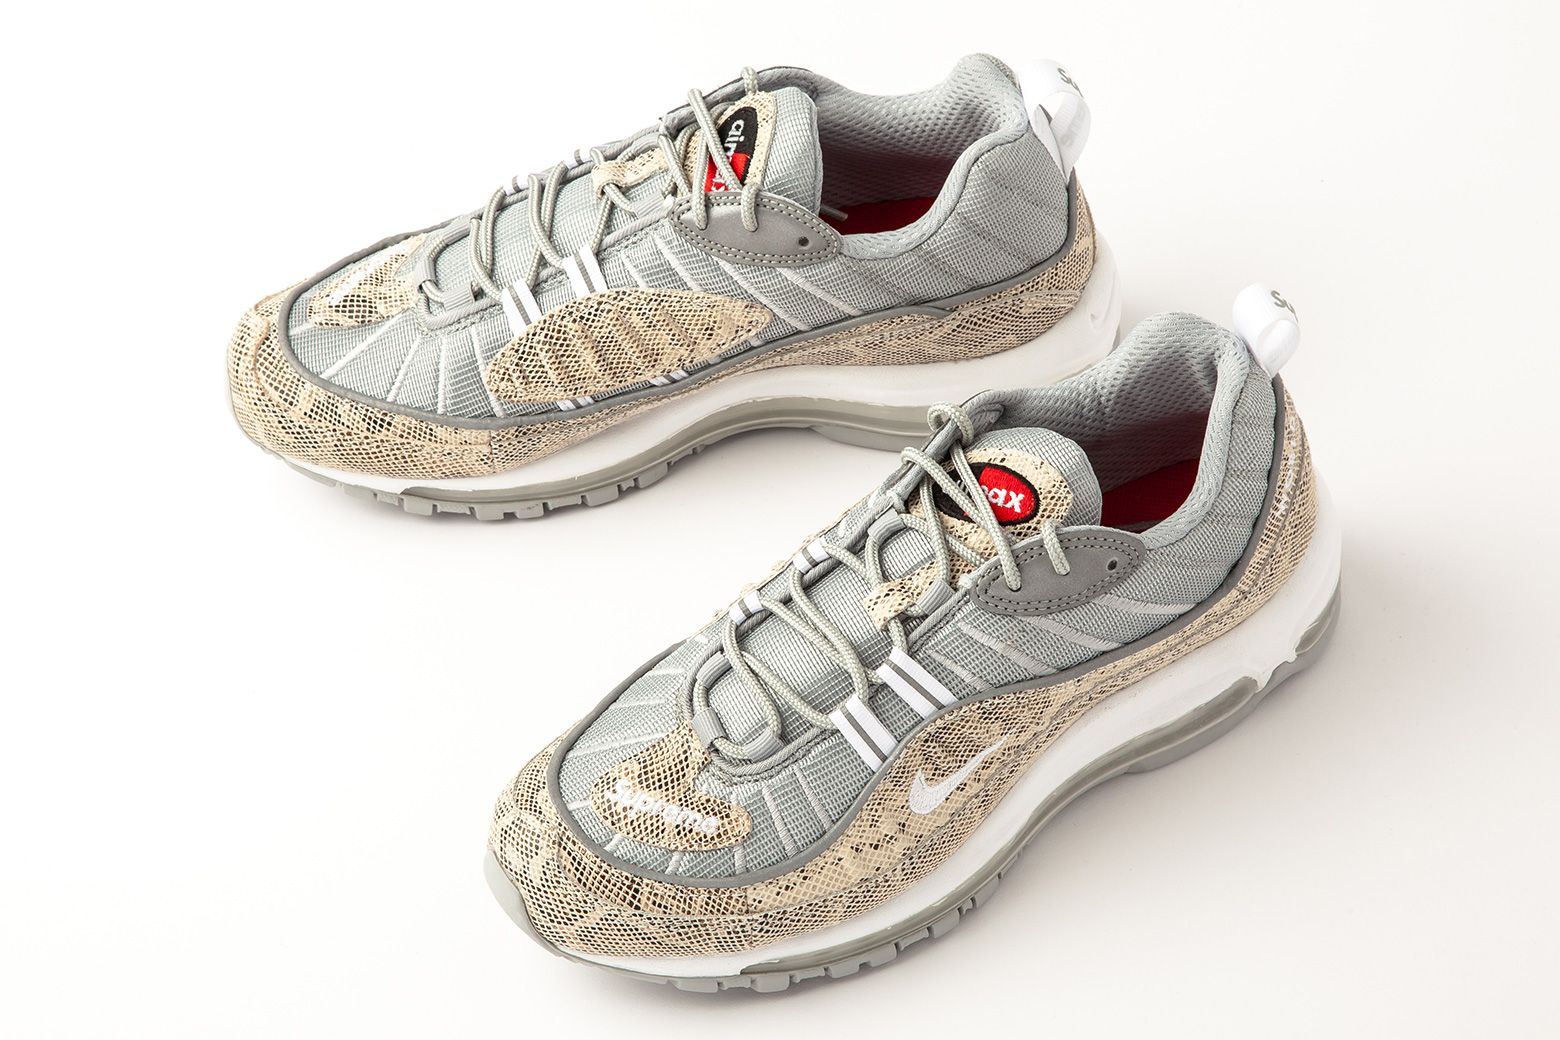 Supreme x Nike Air Max 98 Sail 844694 100 |